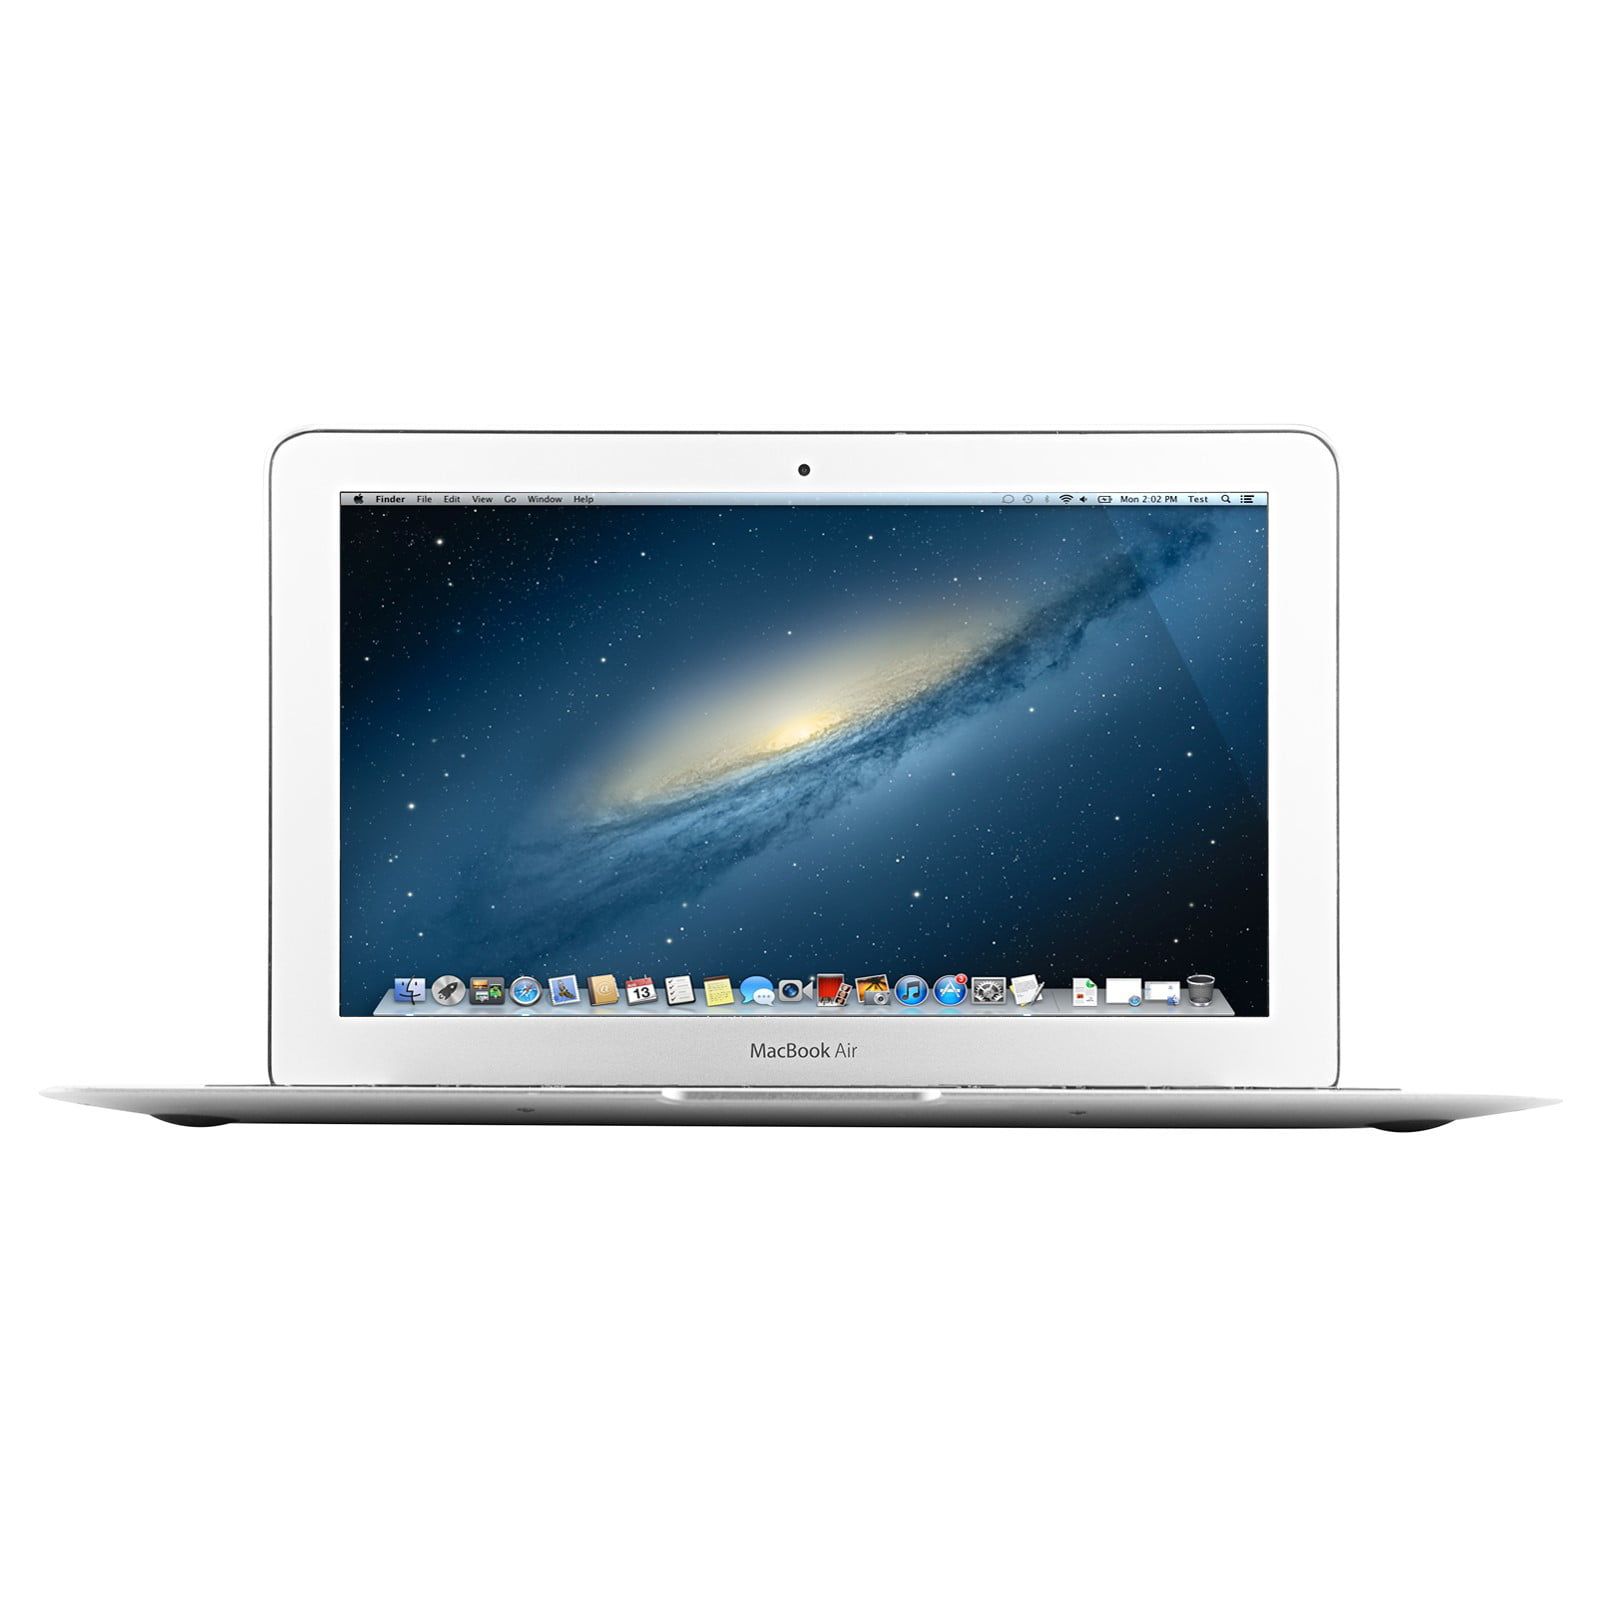 Apple MacBook Air 11.6 Inch Laptop MC968LL/A (Certified Refurbished)